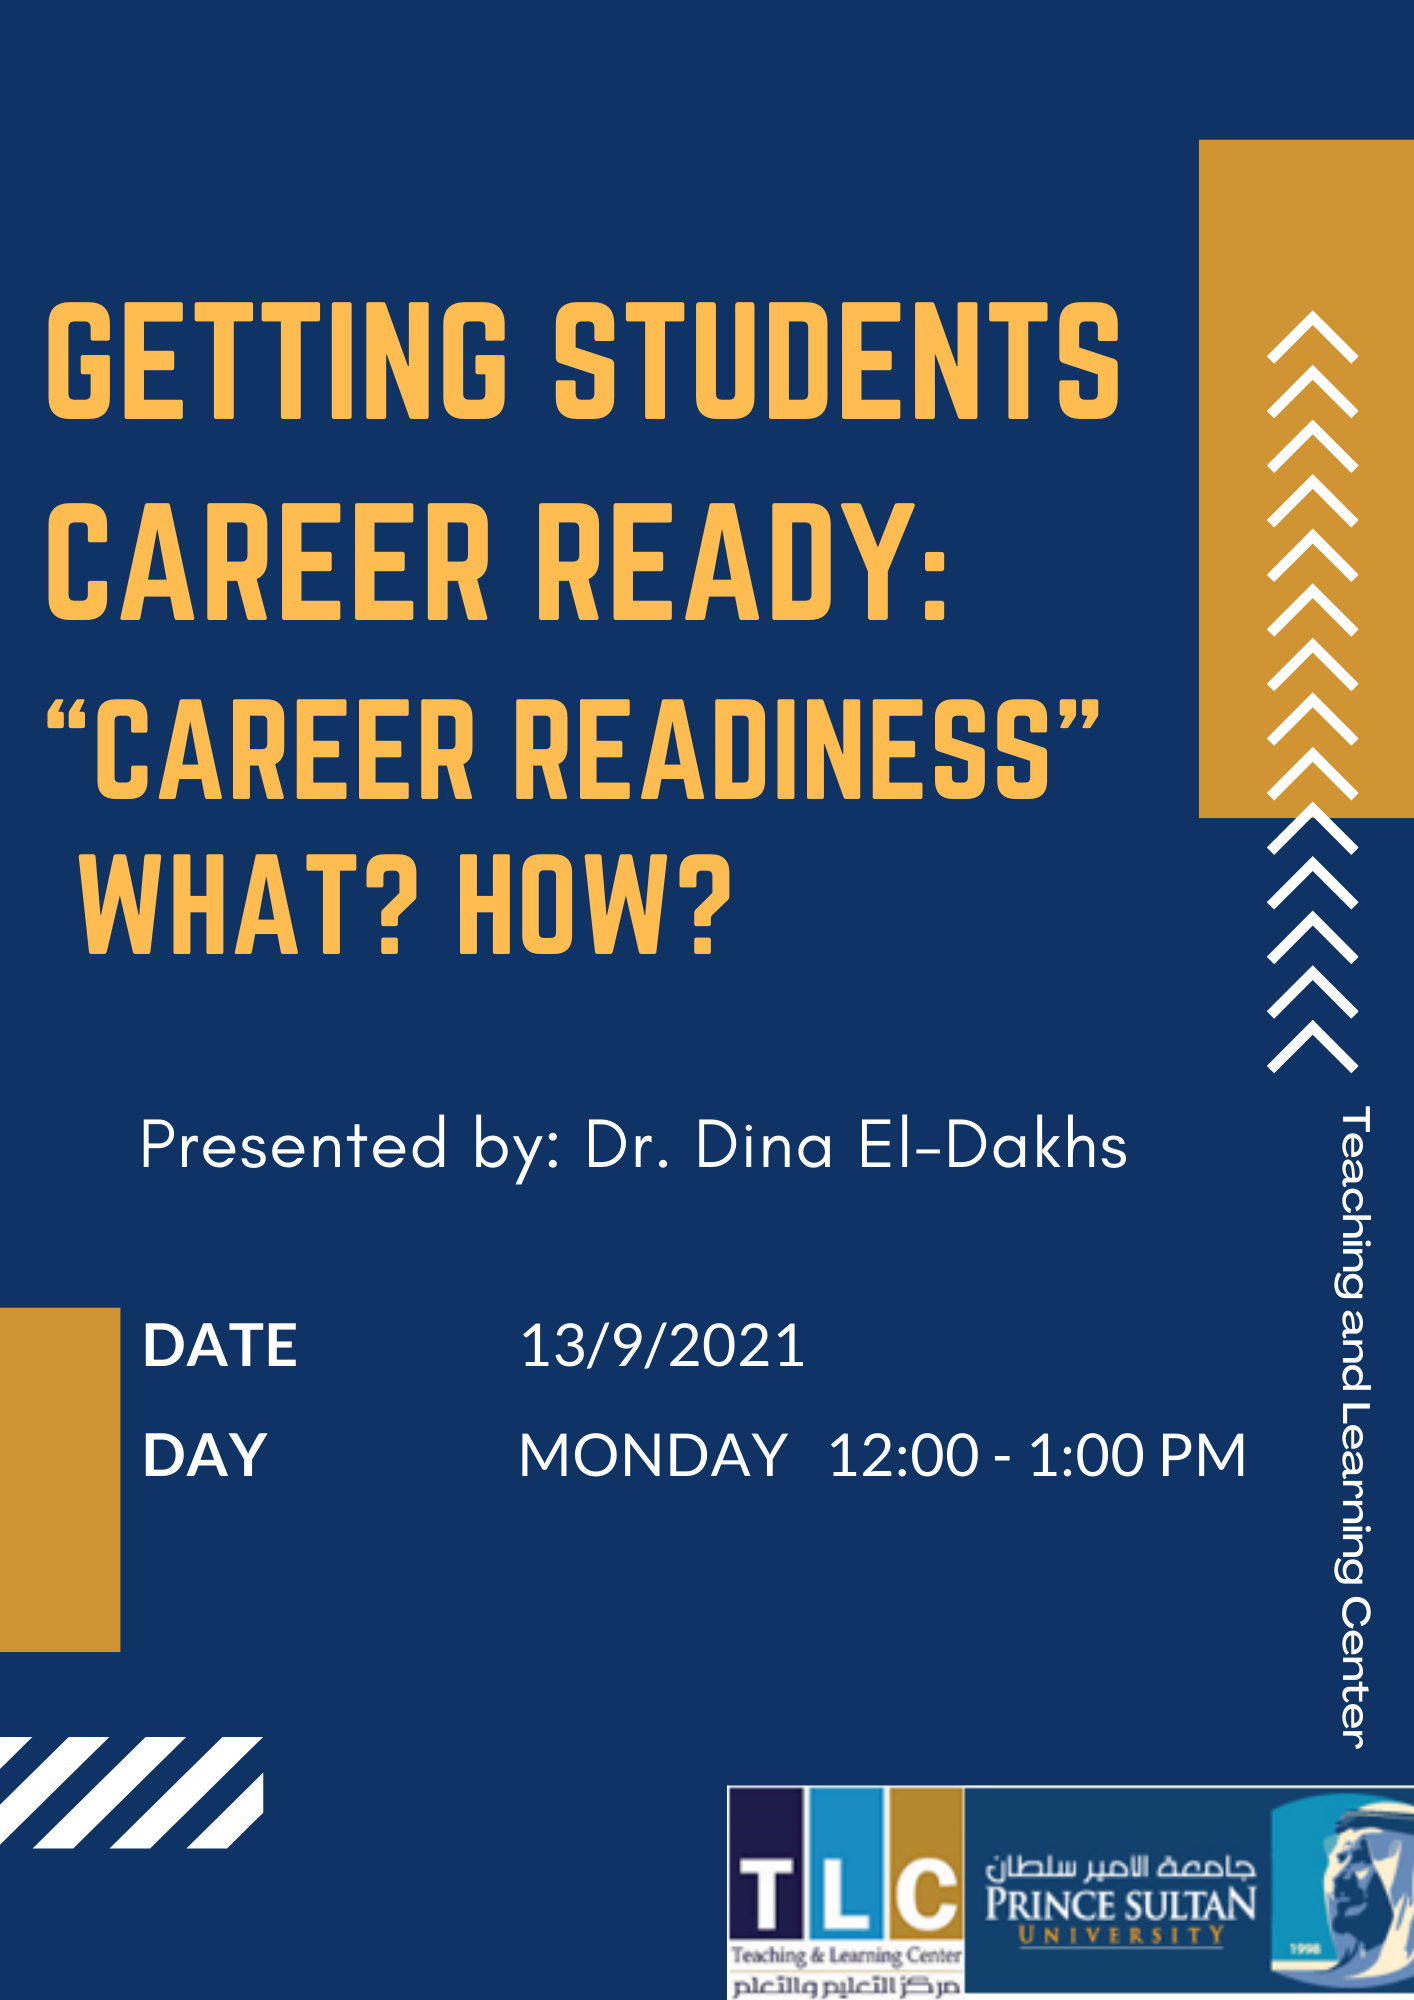 Getting student career ready